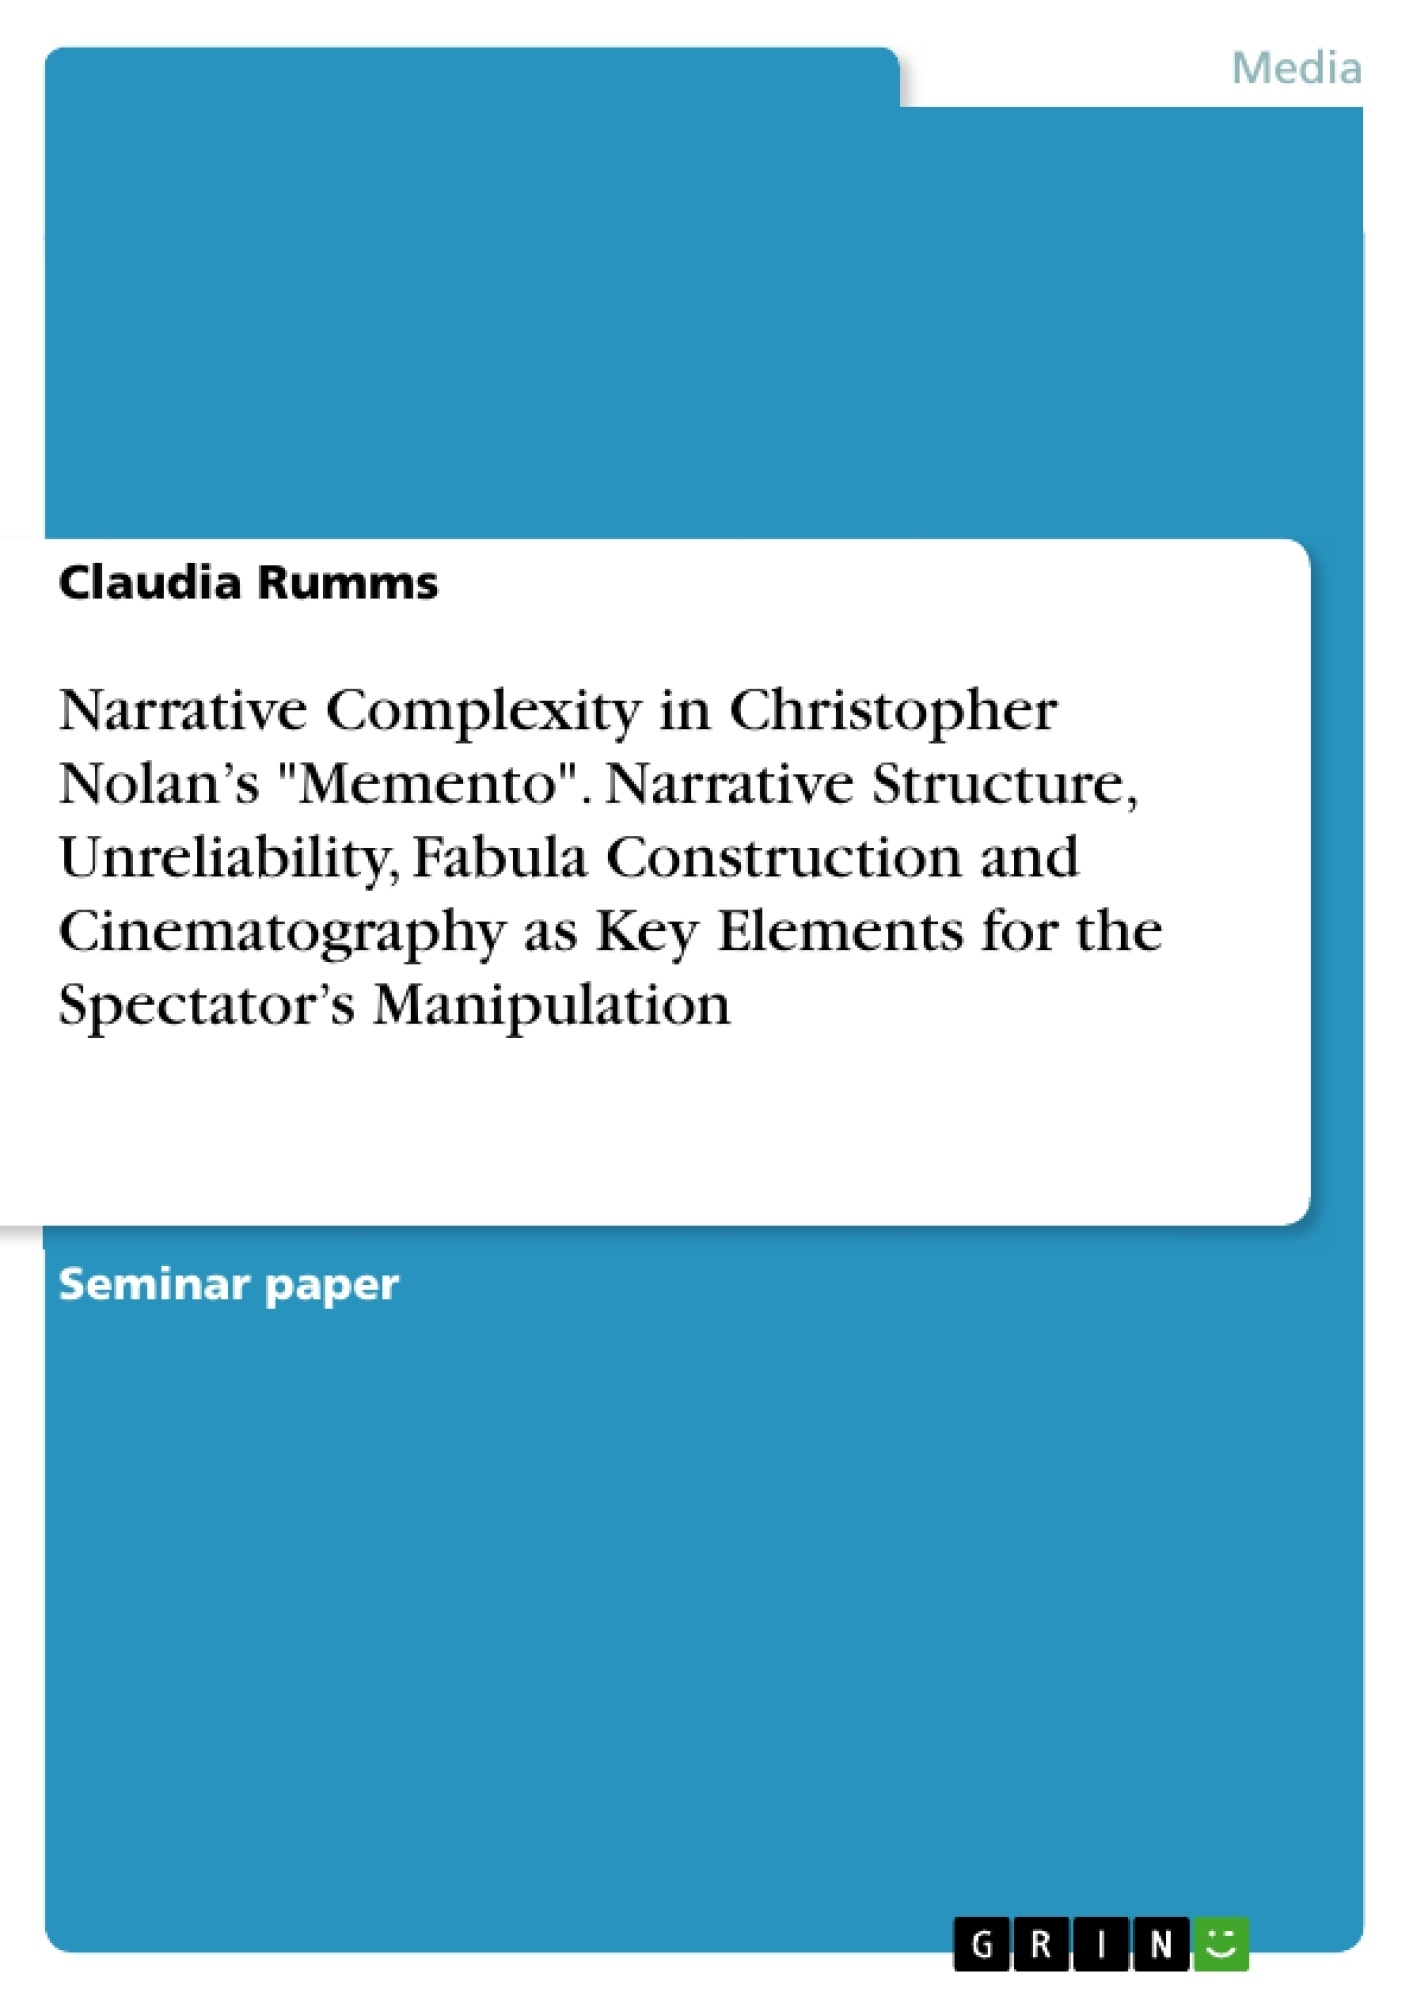 narrative complexity in christopher nolan s memento narrative narrative complexity in christopher nolan s memento narrative publish your master s thesis bachelor s thesis essay or term paper